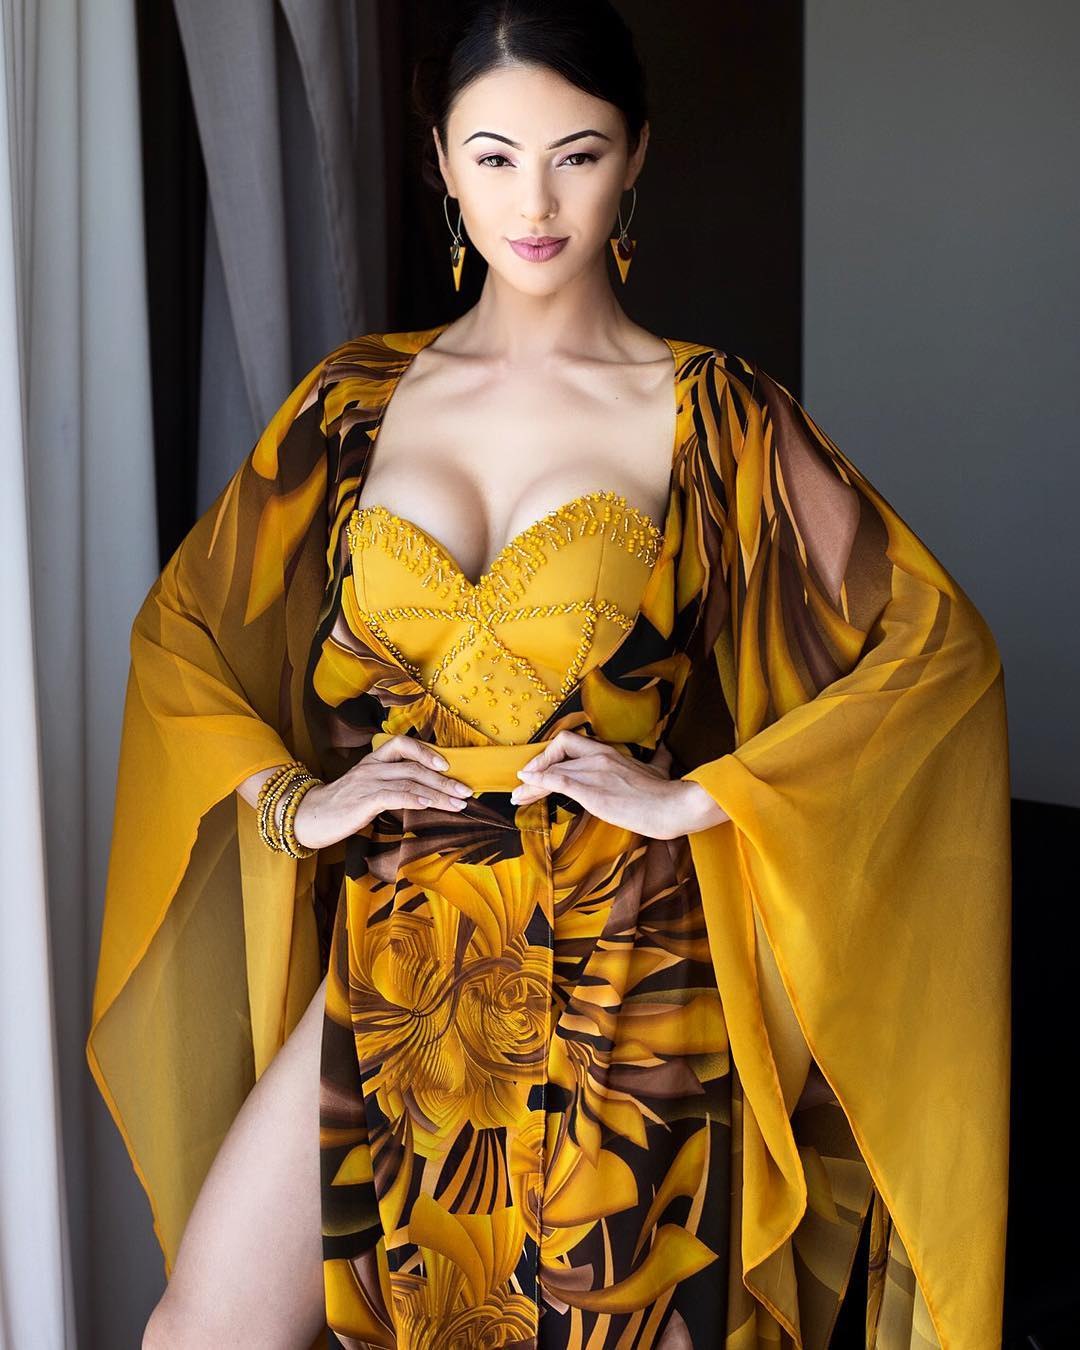 Lalla Hirayama takes Paris (Photos)